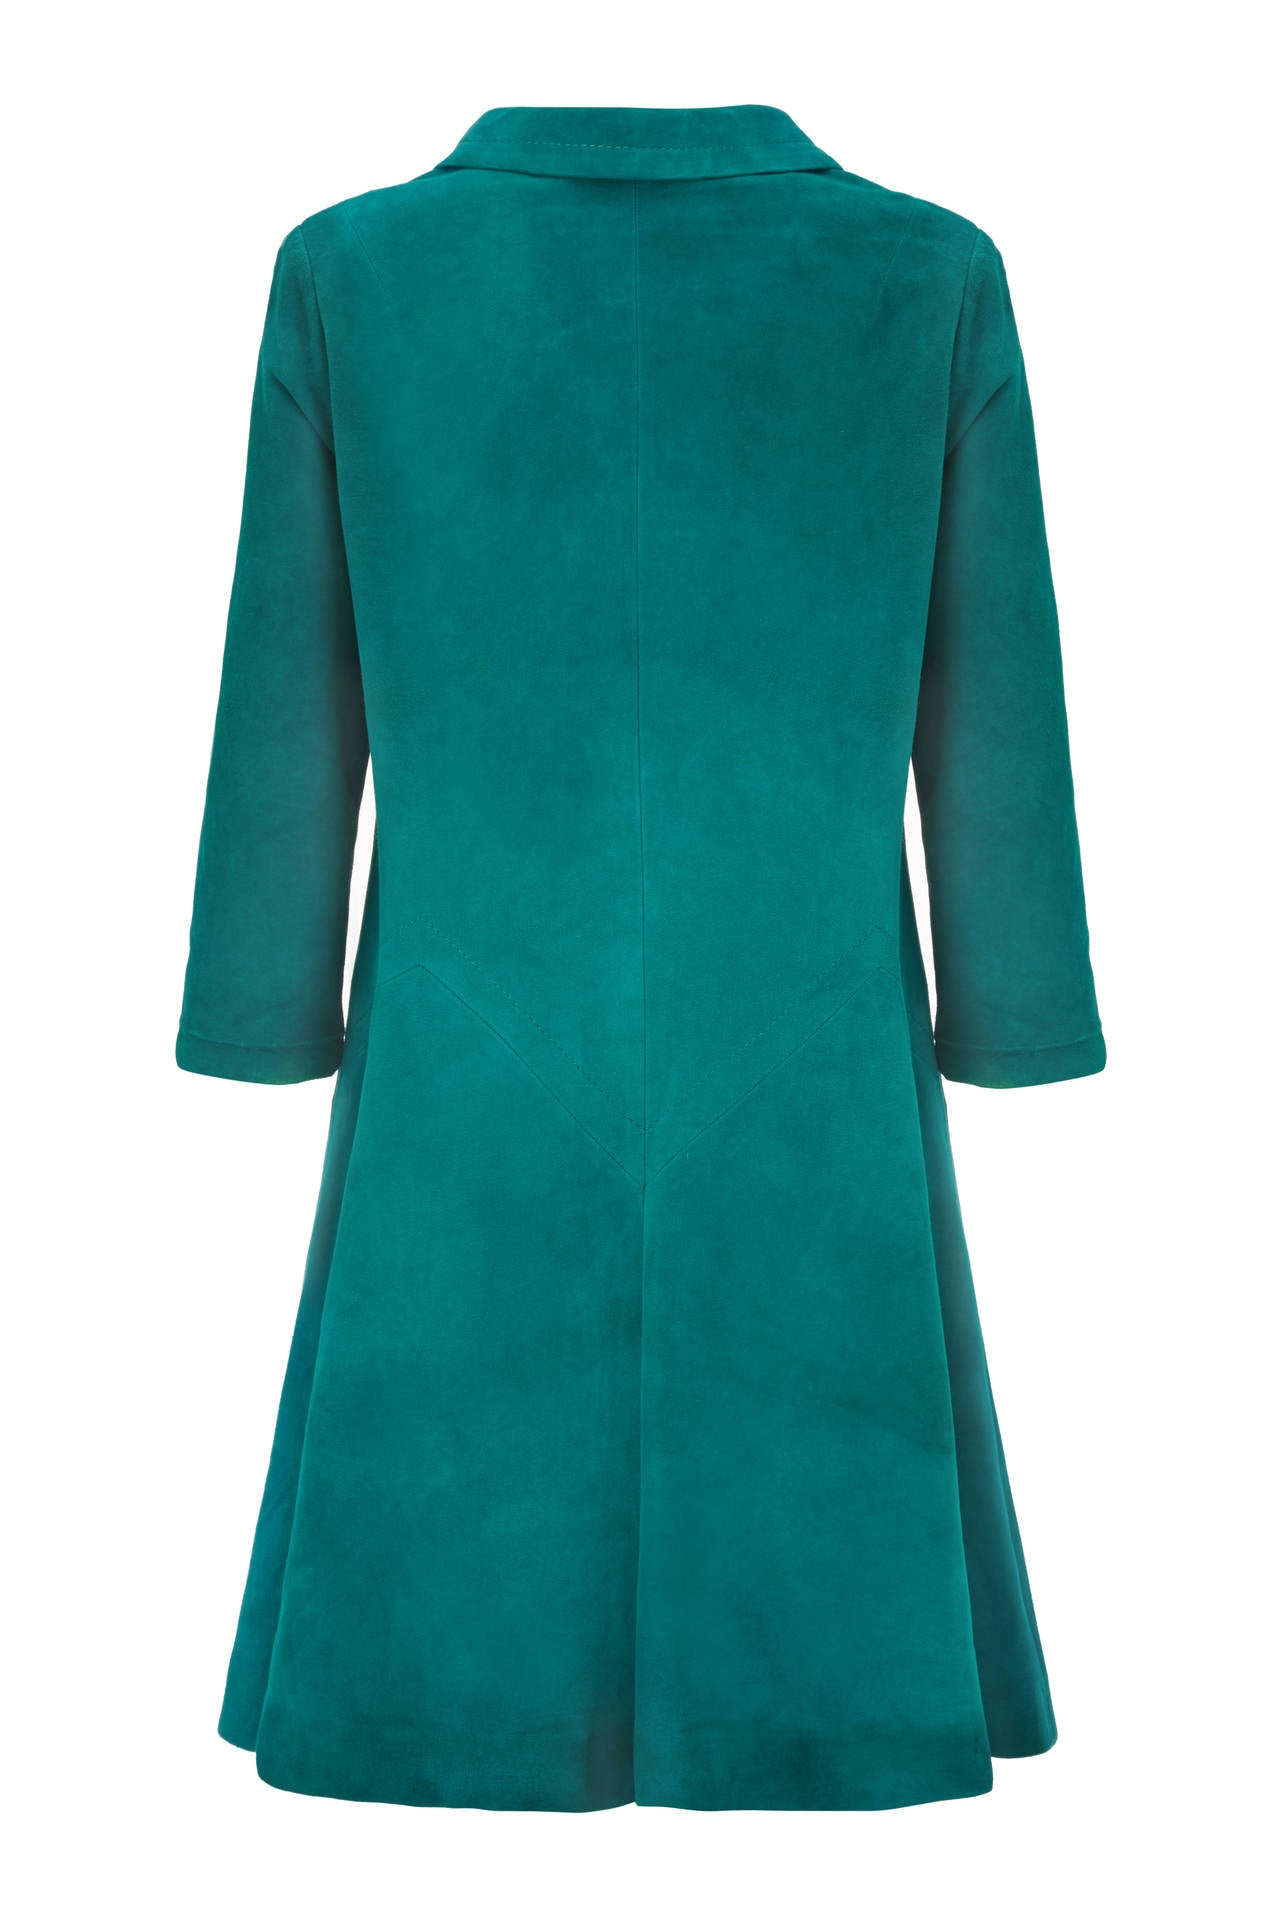 Beautiful teal suede double-breasted trapeze coat from iconic French designer Pierre Cardin.  An early piece from an important designer this beautiful coat features a zig-zag seam at hip level and large covered buttons to fasten at the front. It is